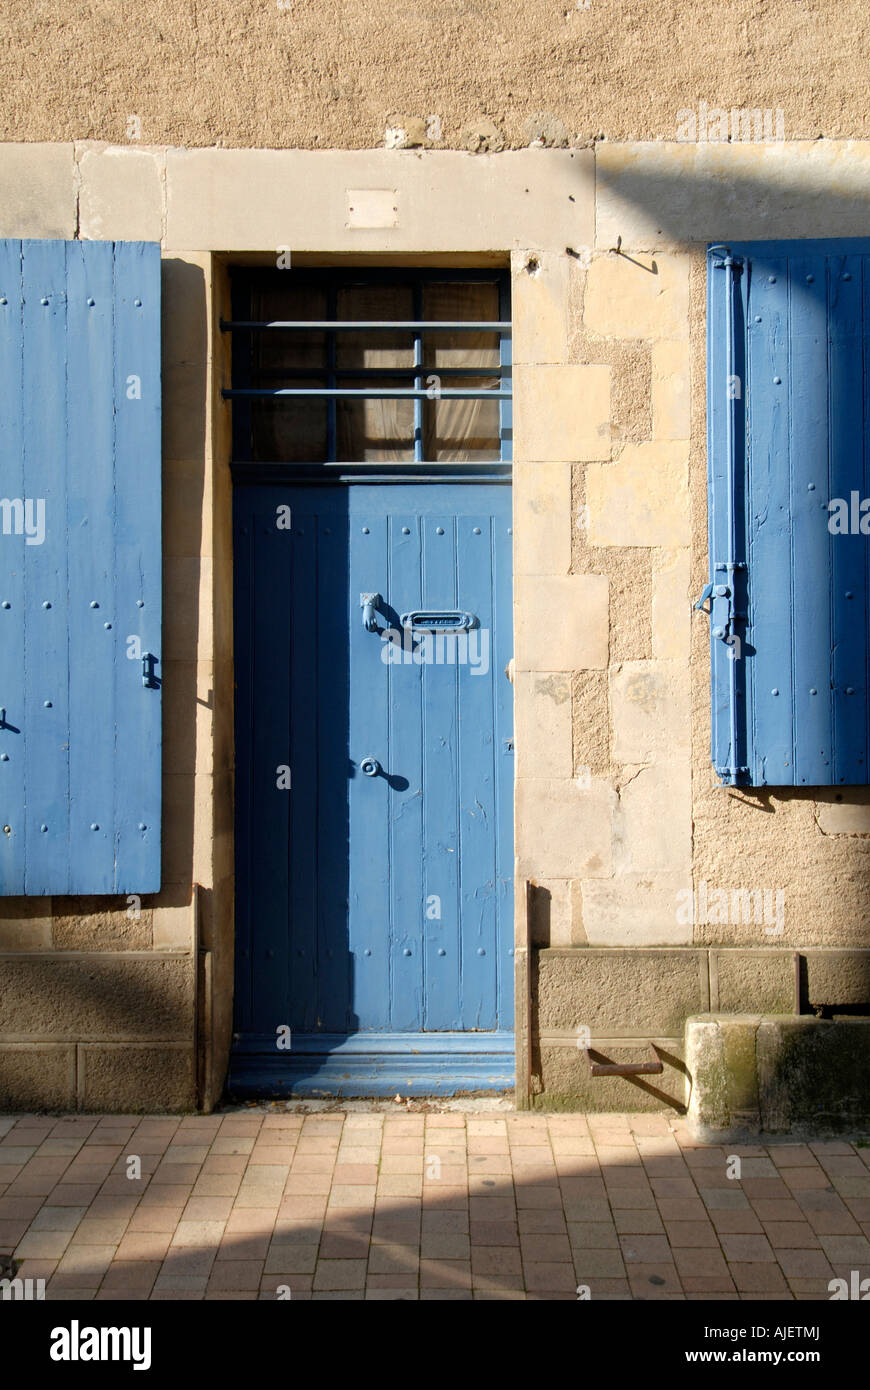 Blue door and shutters, Montmorillon, Vienne, France. - Stock Image